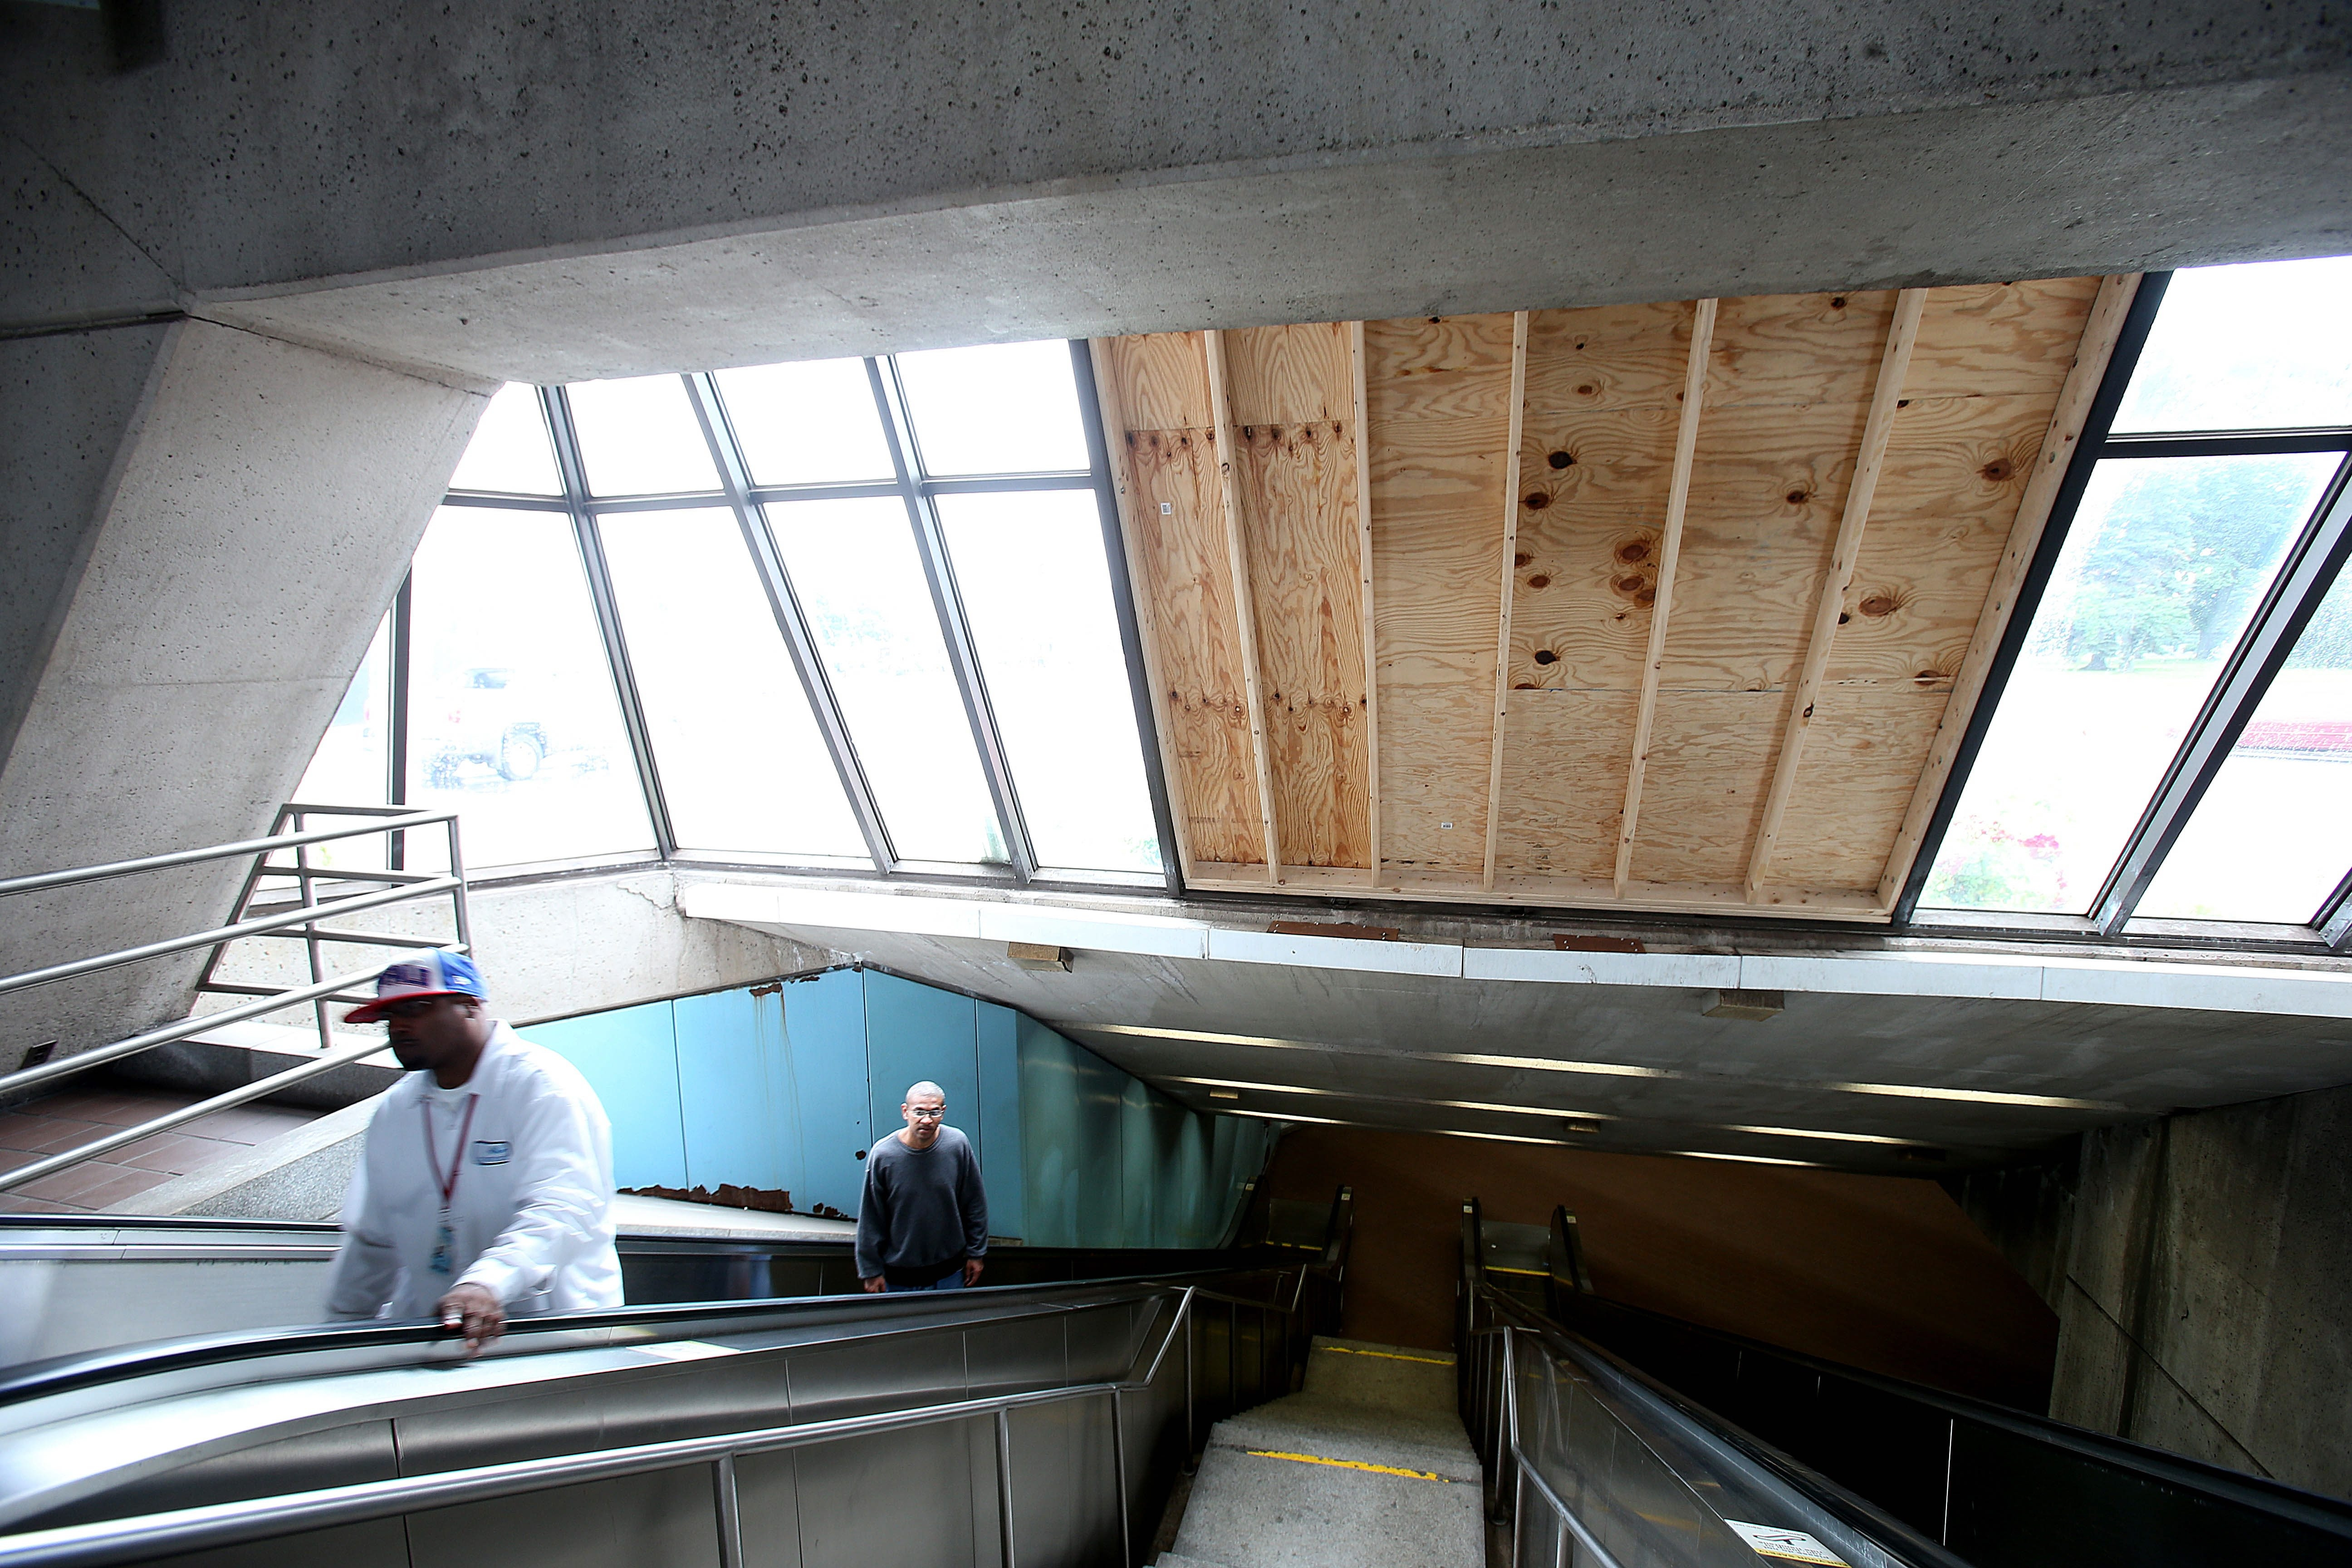 Visitors to the Delavan-Canisius station are treated to rusty panels, the smell of urine, the sound of unsettling Schoenberg music and the threat of  automobiles crashing through the window.